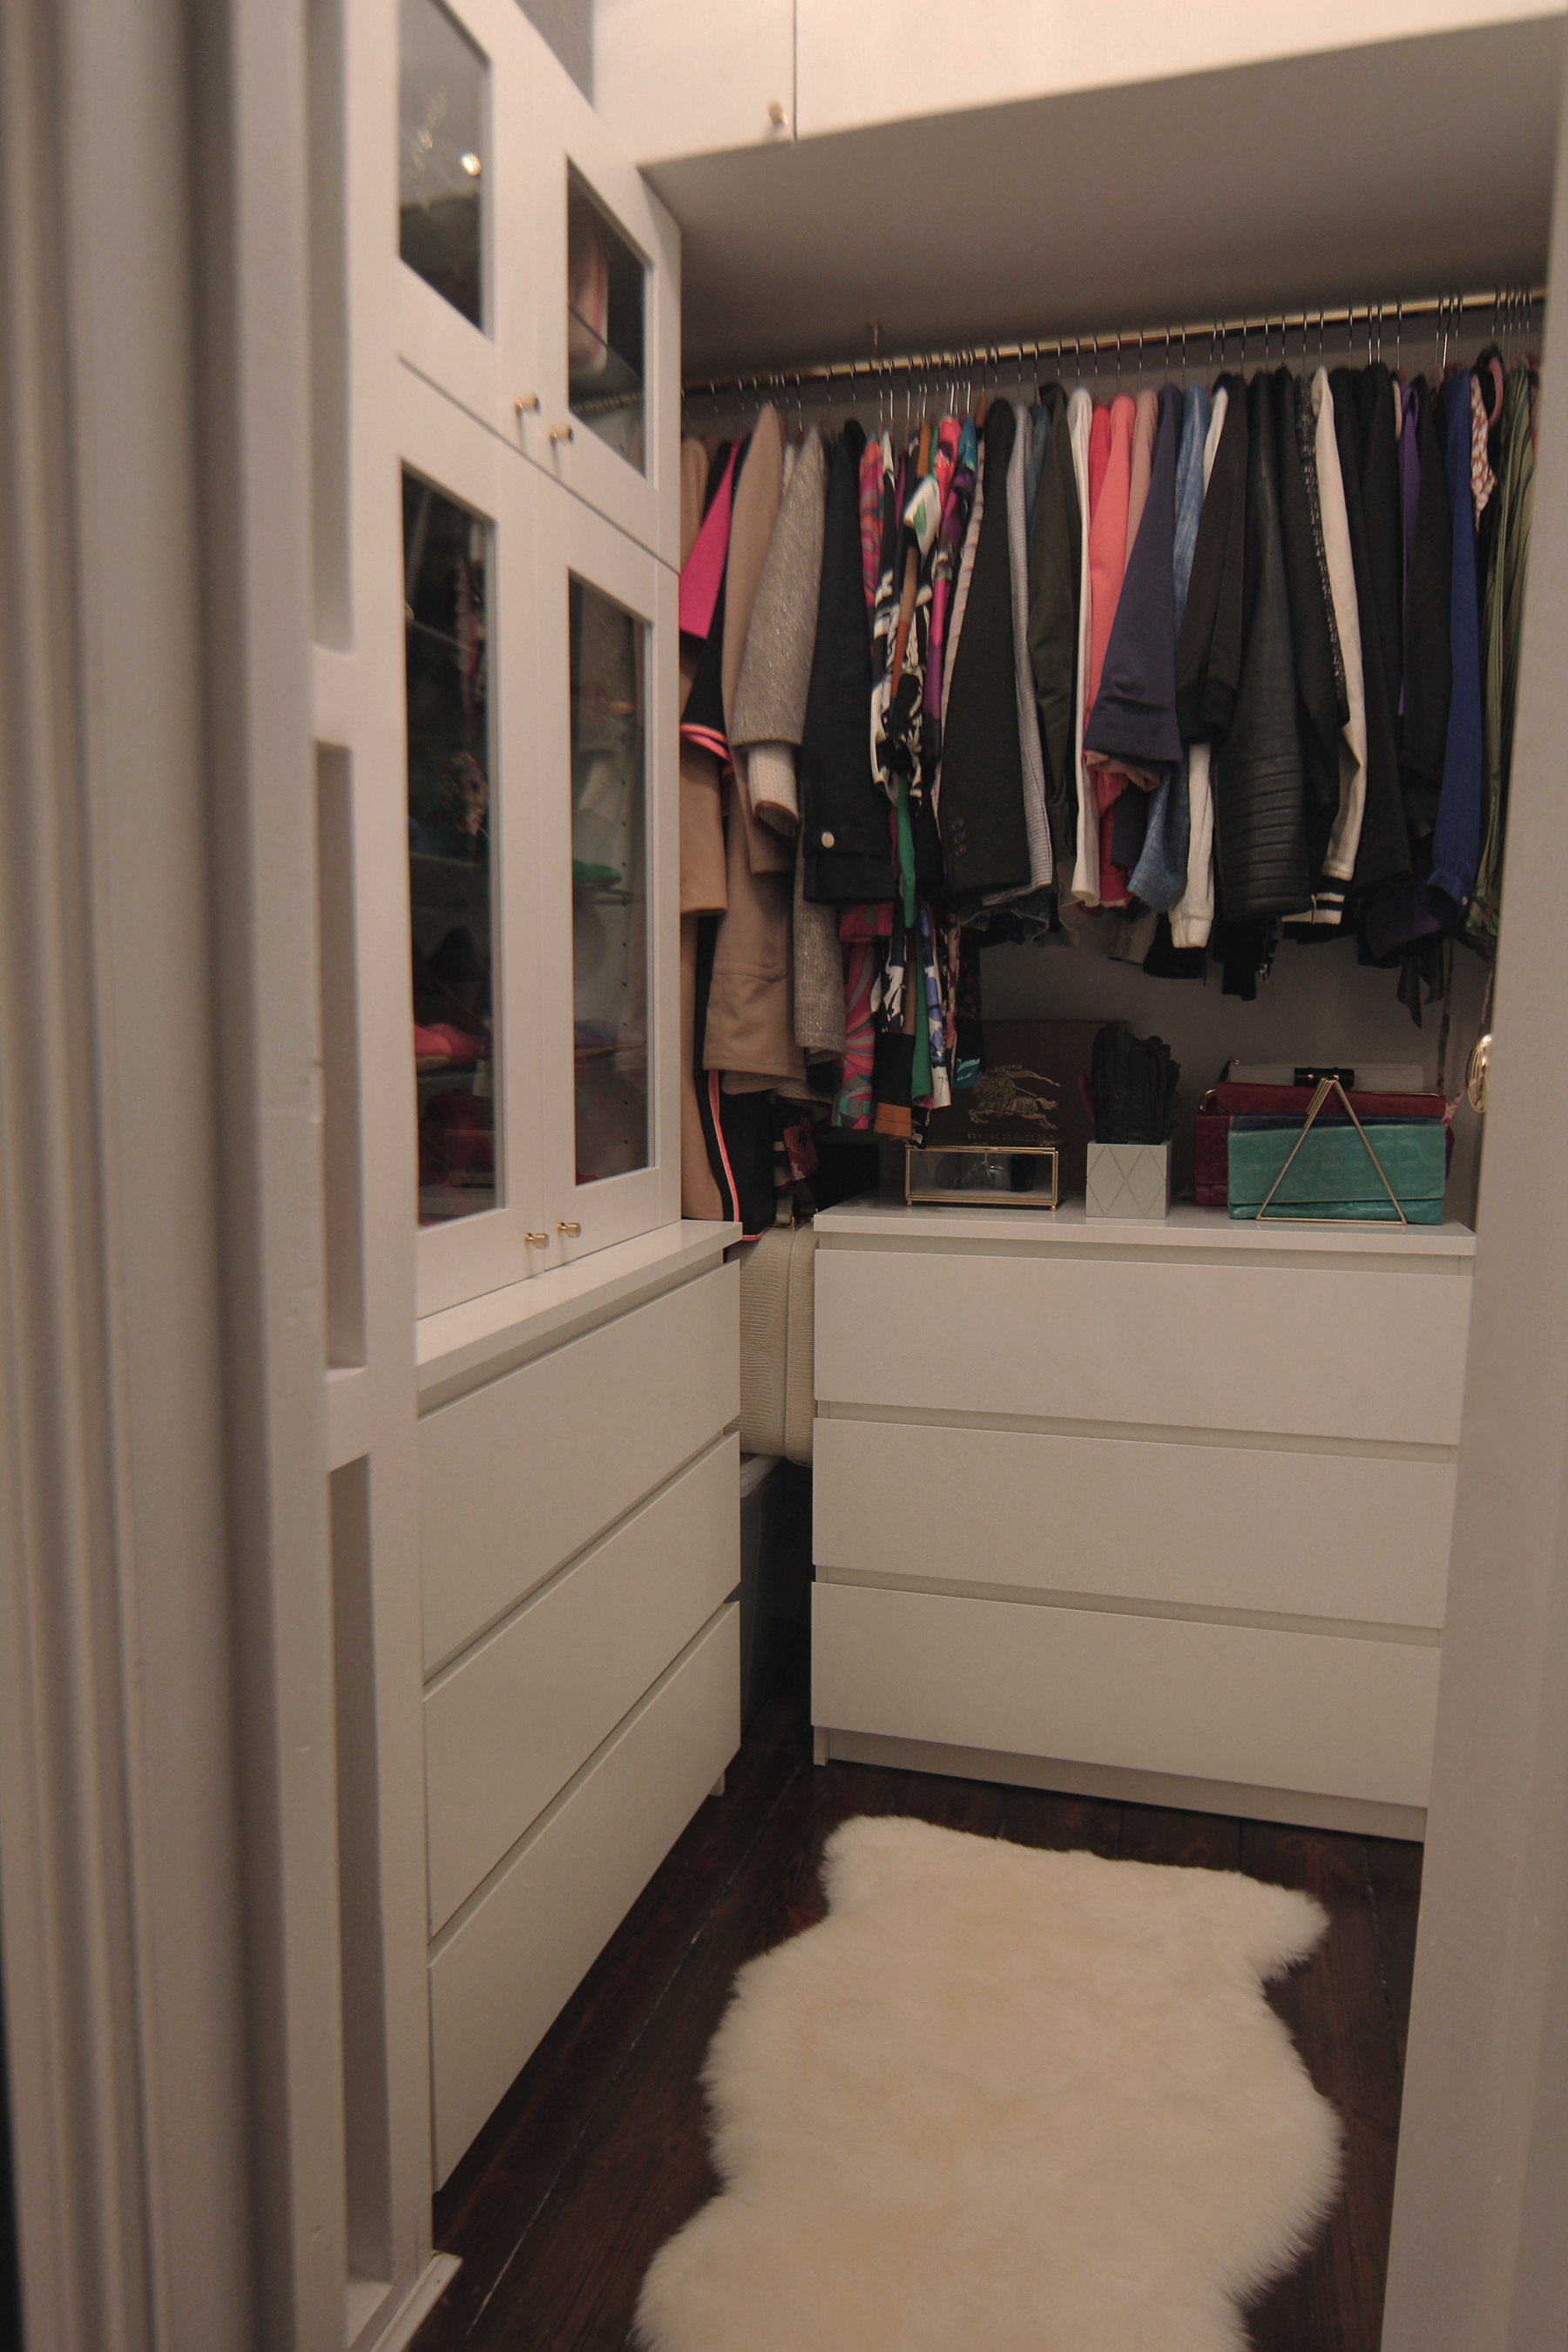 Preciously Me blog : One Room Challenge - Bedroom makeover reveal. Closet